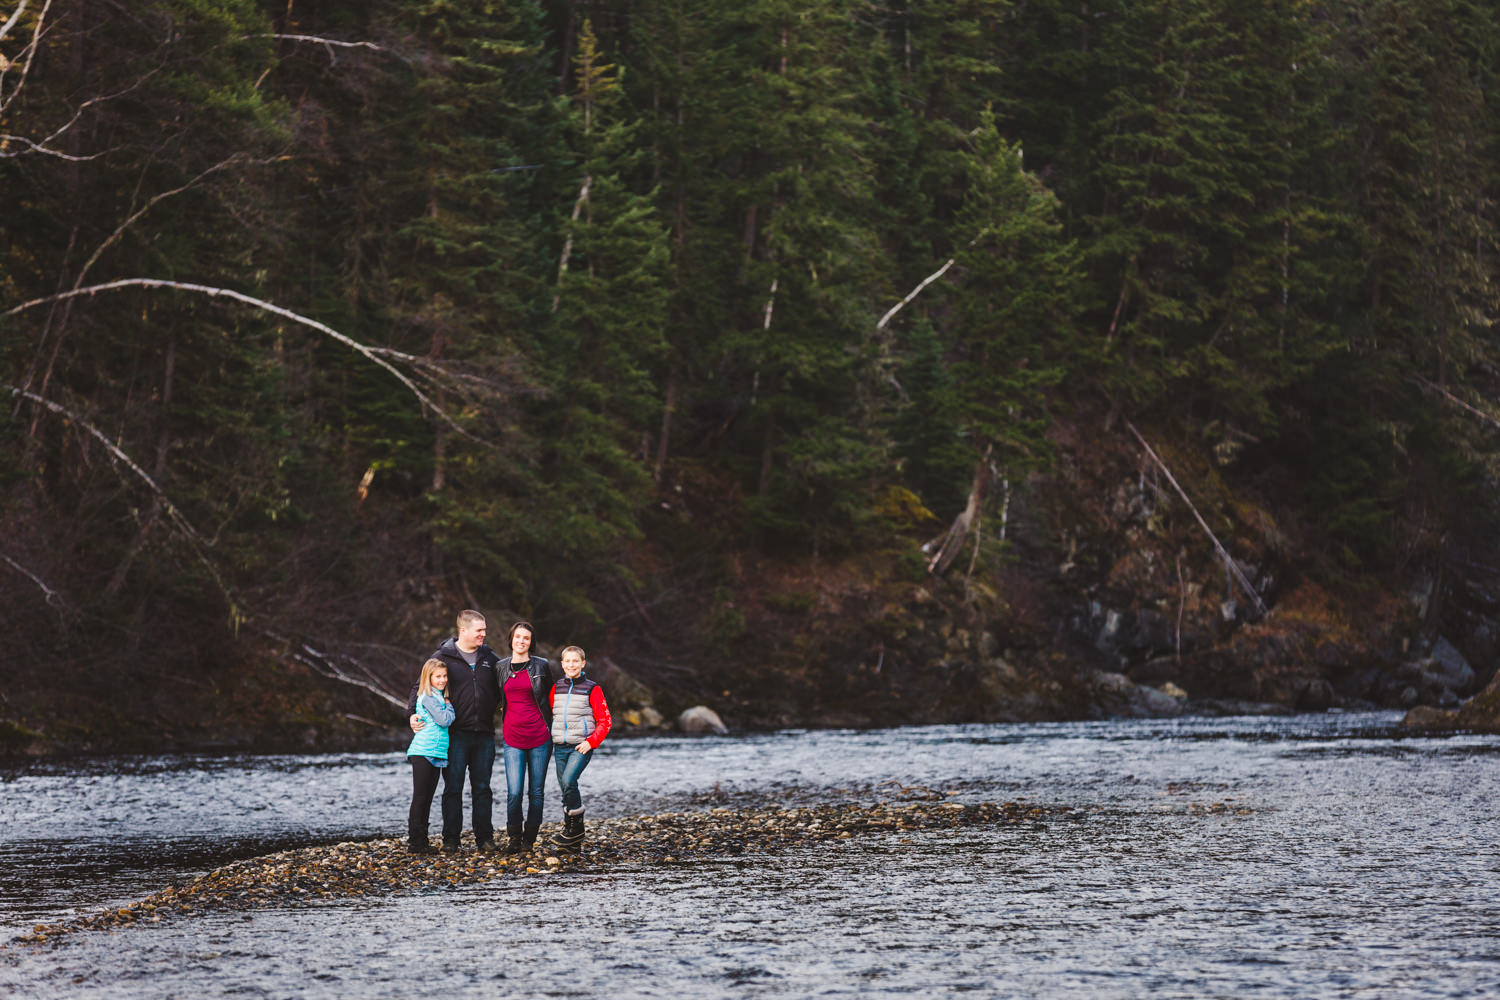 quesnel-family-photographers-quesnel-family-photography-cotton-wood-river-quesnel-bc-kelowna-photographer-julie-dorge (31 of 48).jpg